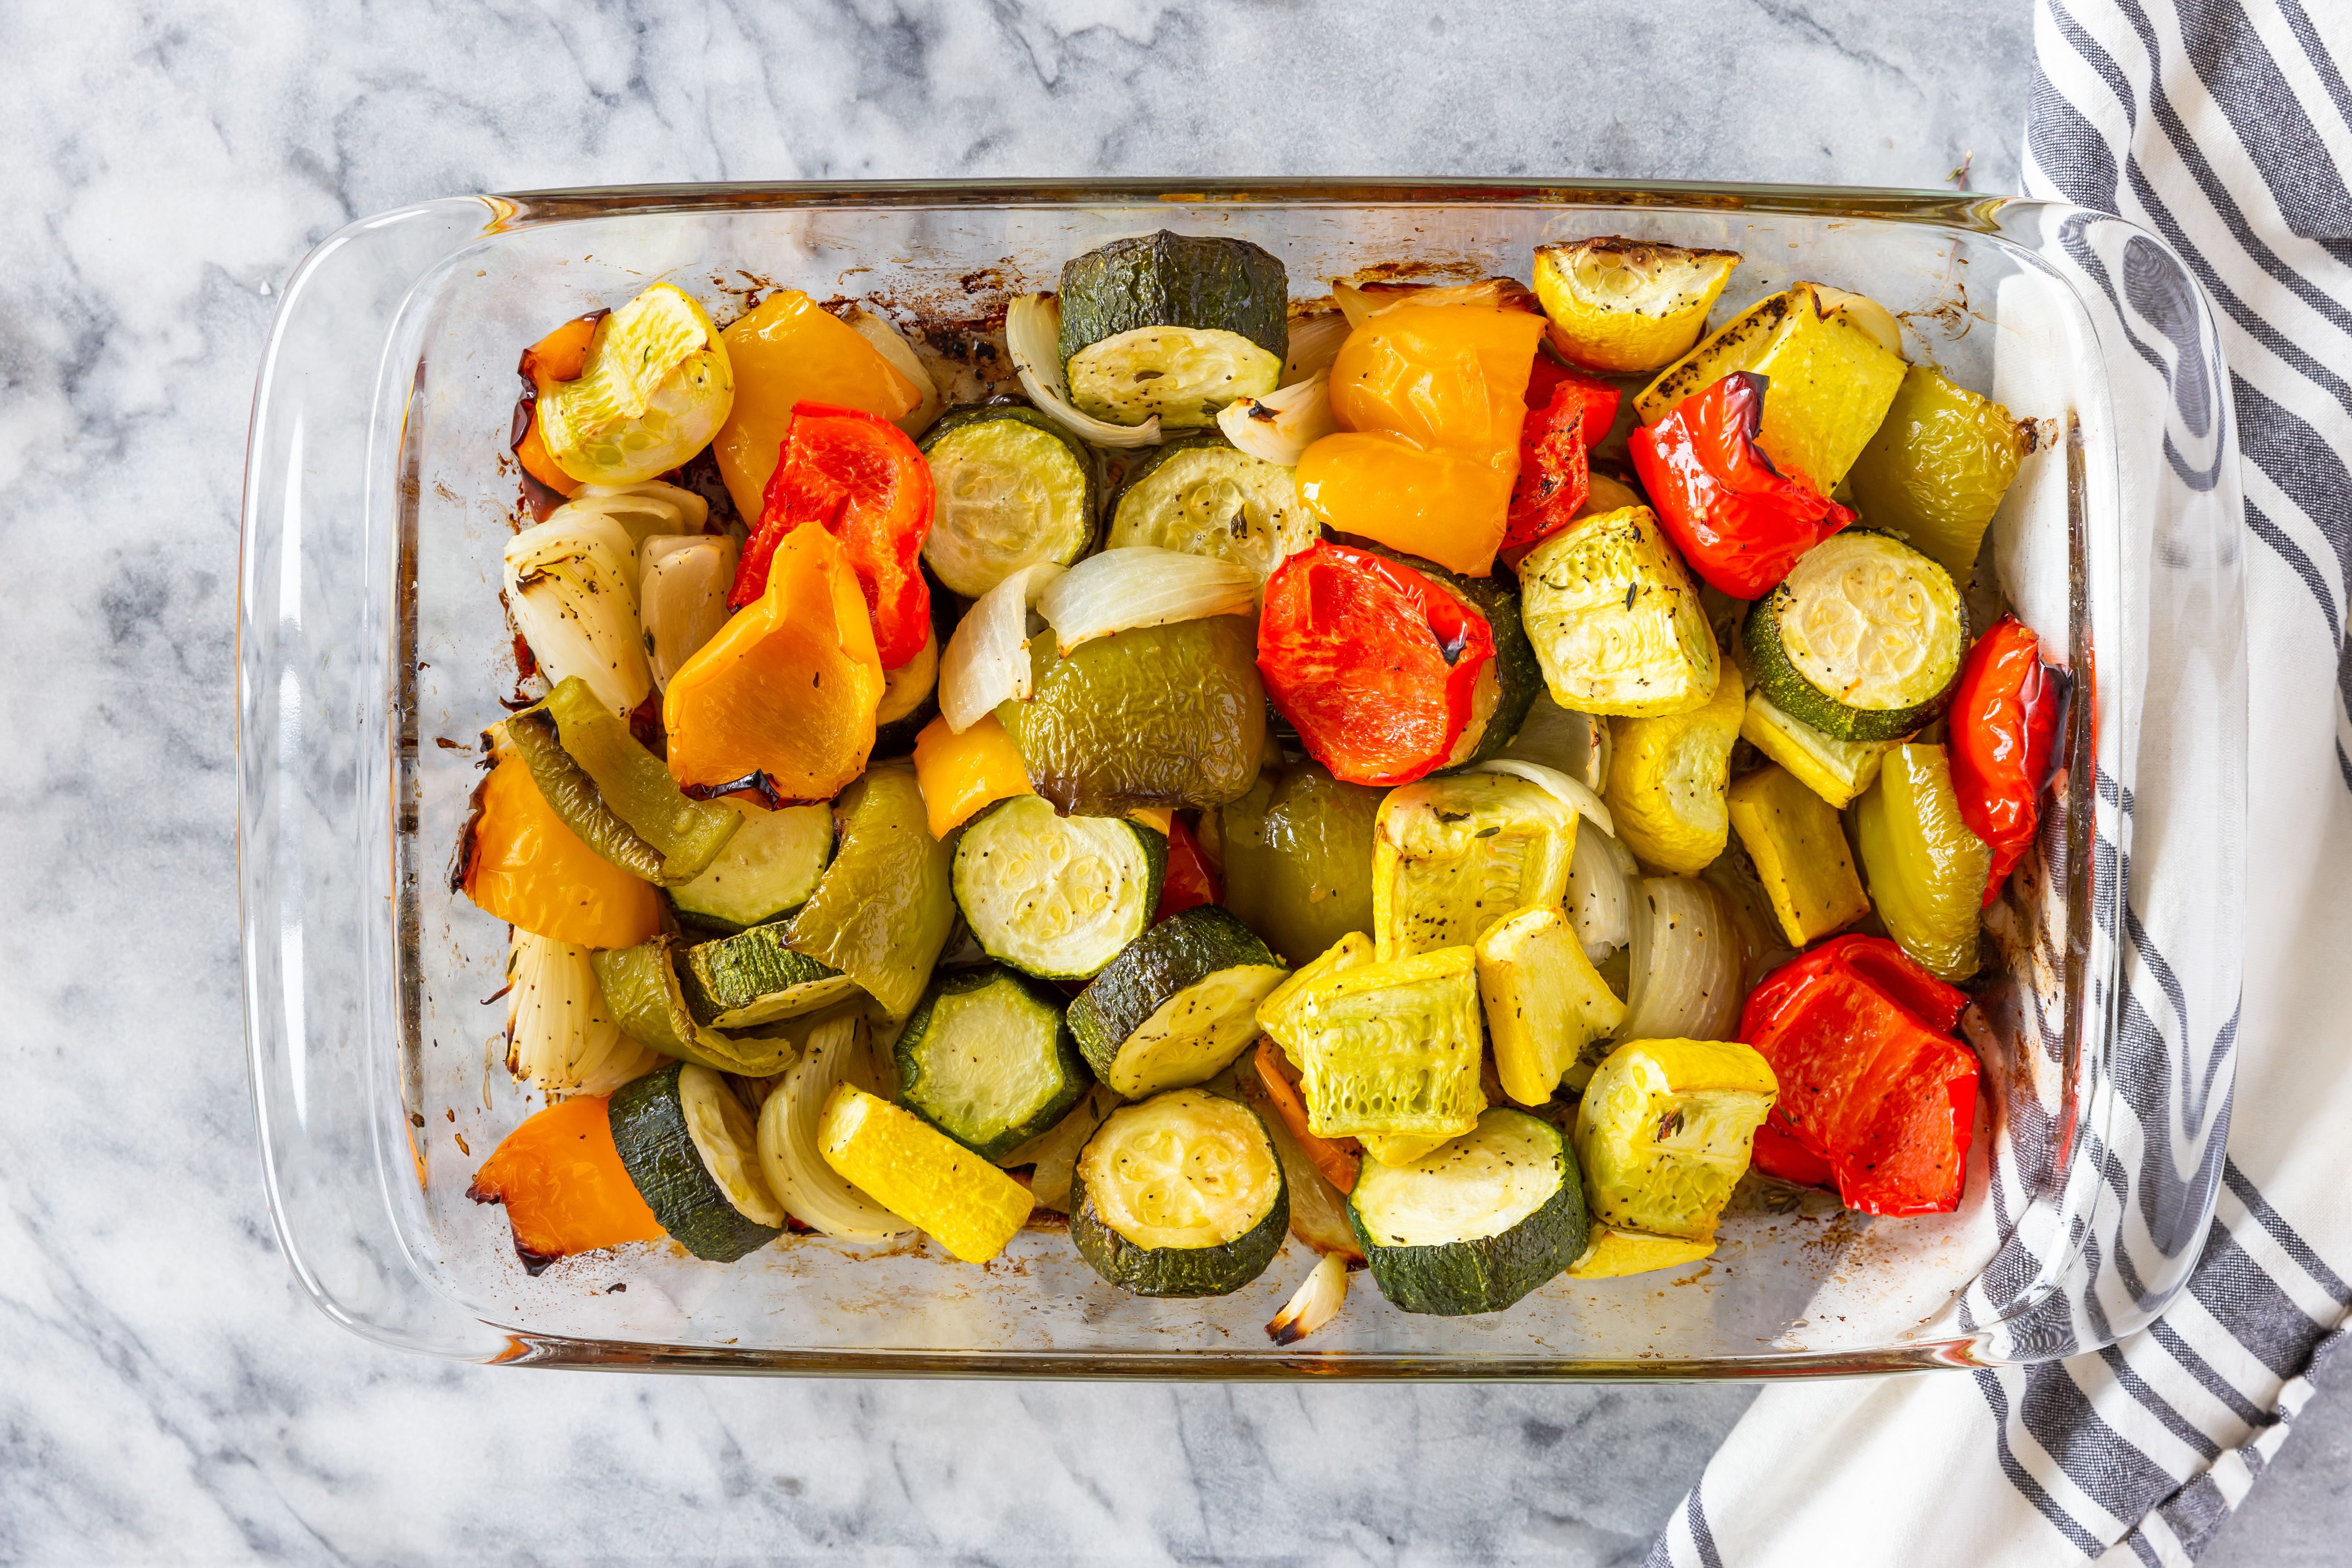 Roasted red peppers and zucchini